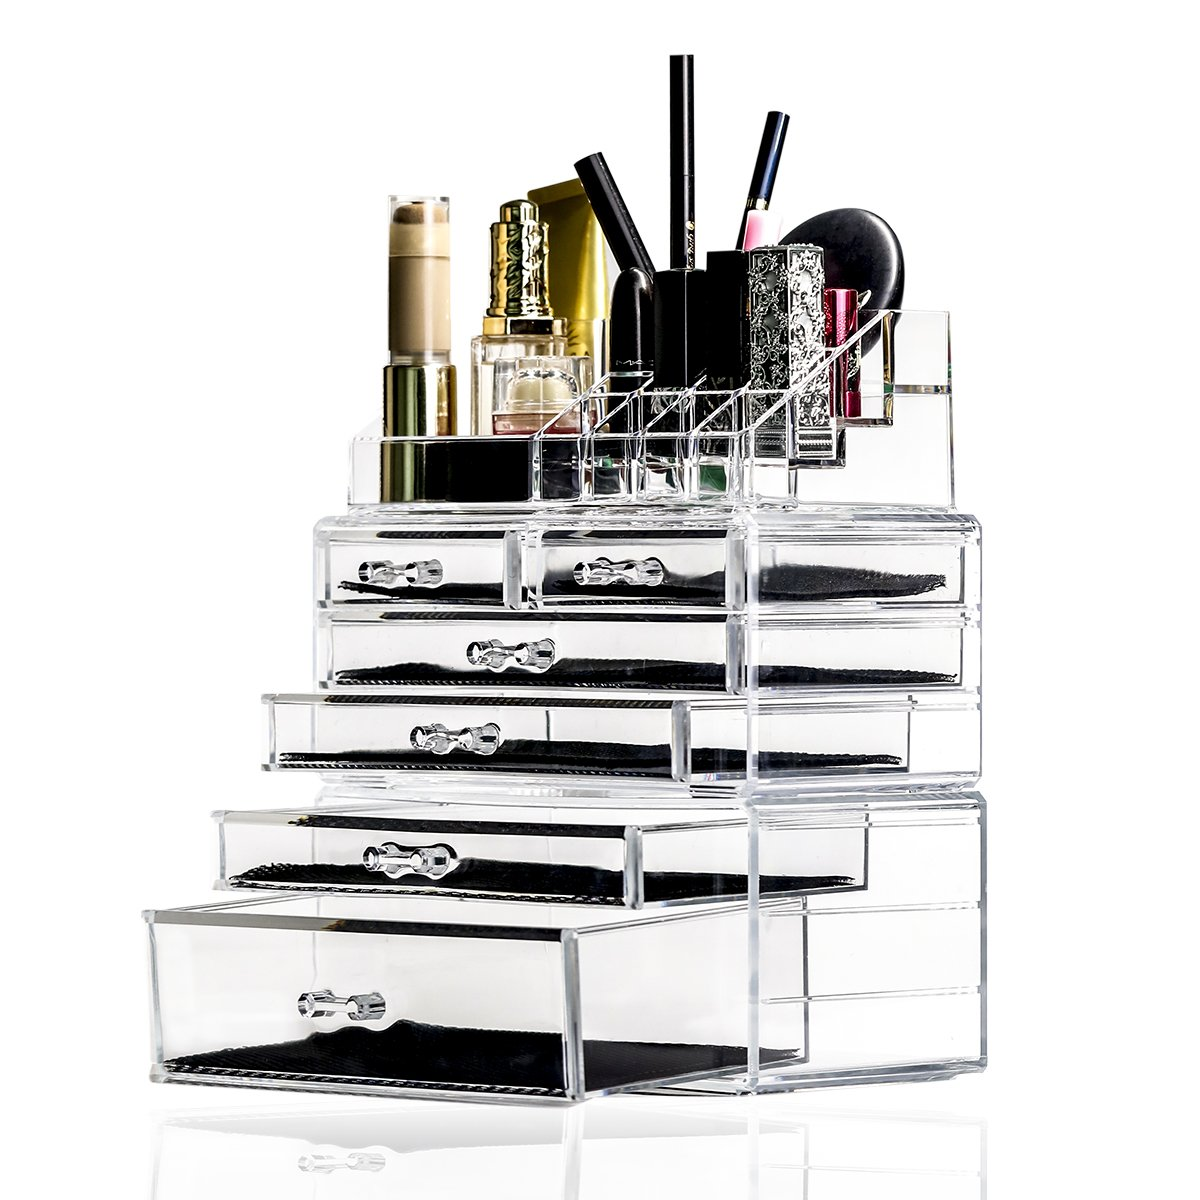 Vinkoe Kitchen Makeup Organizer,Acrylic Cosmetic Storage Drawers and Jewelry Display Box,3 Pieces